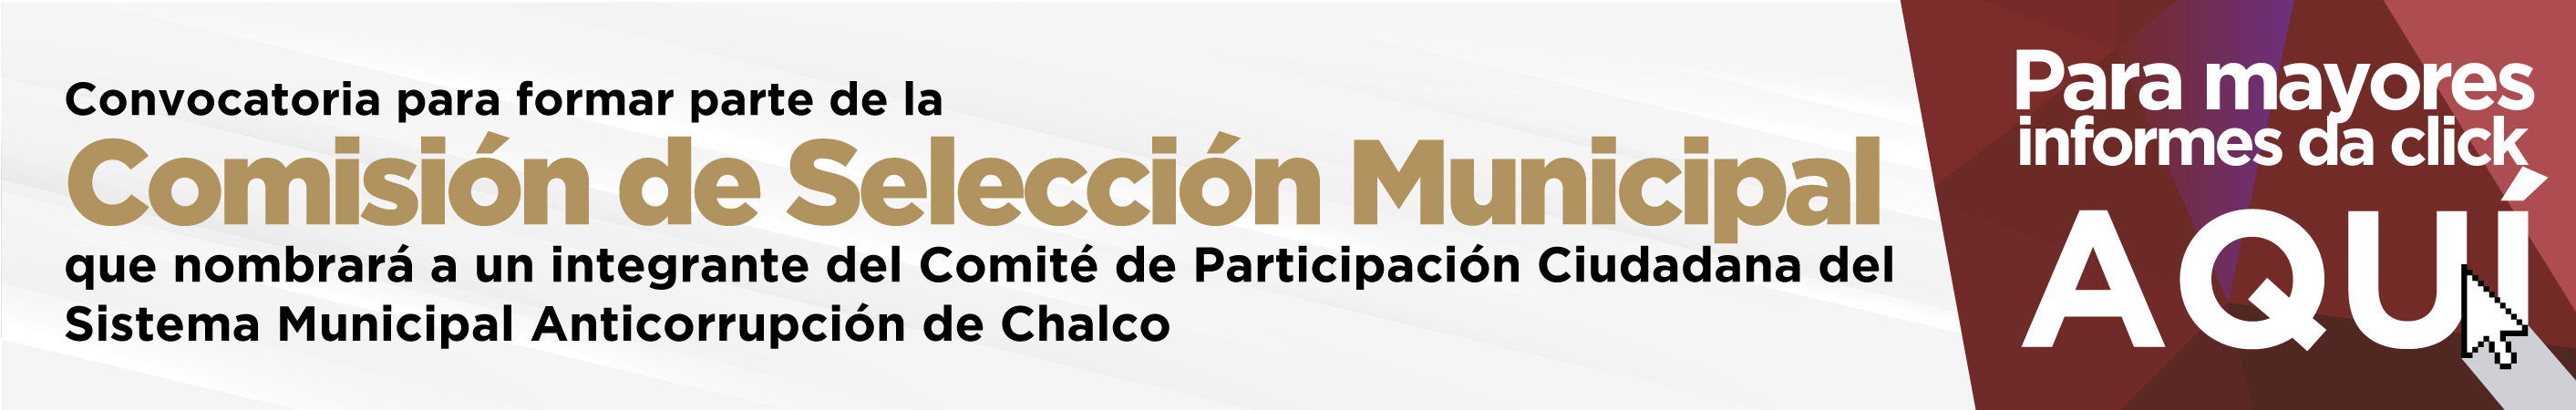 convocatoria-comision-seleccion-municipal